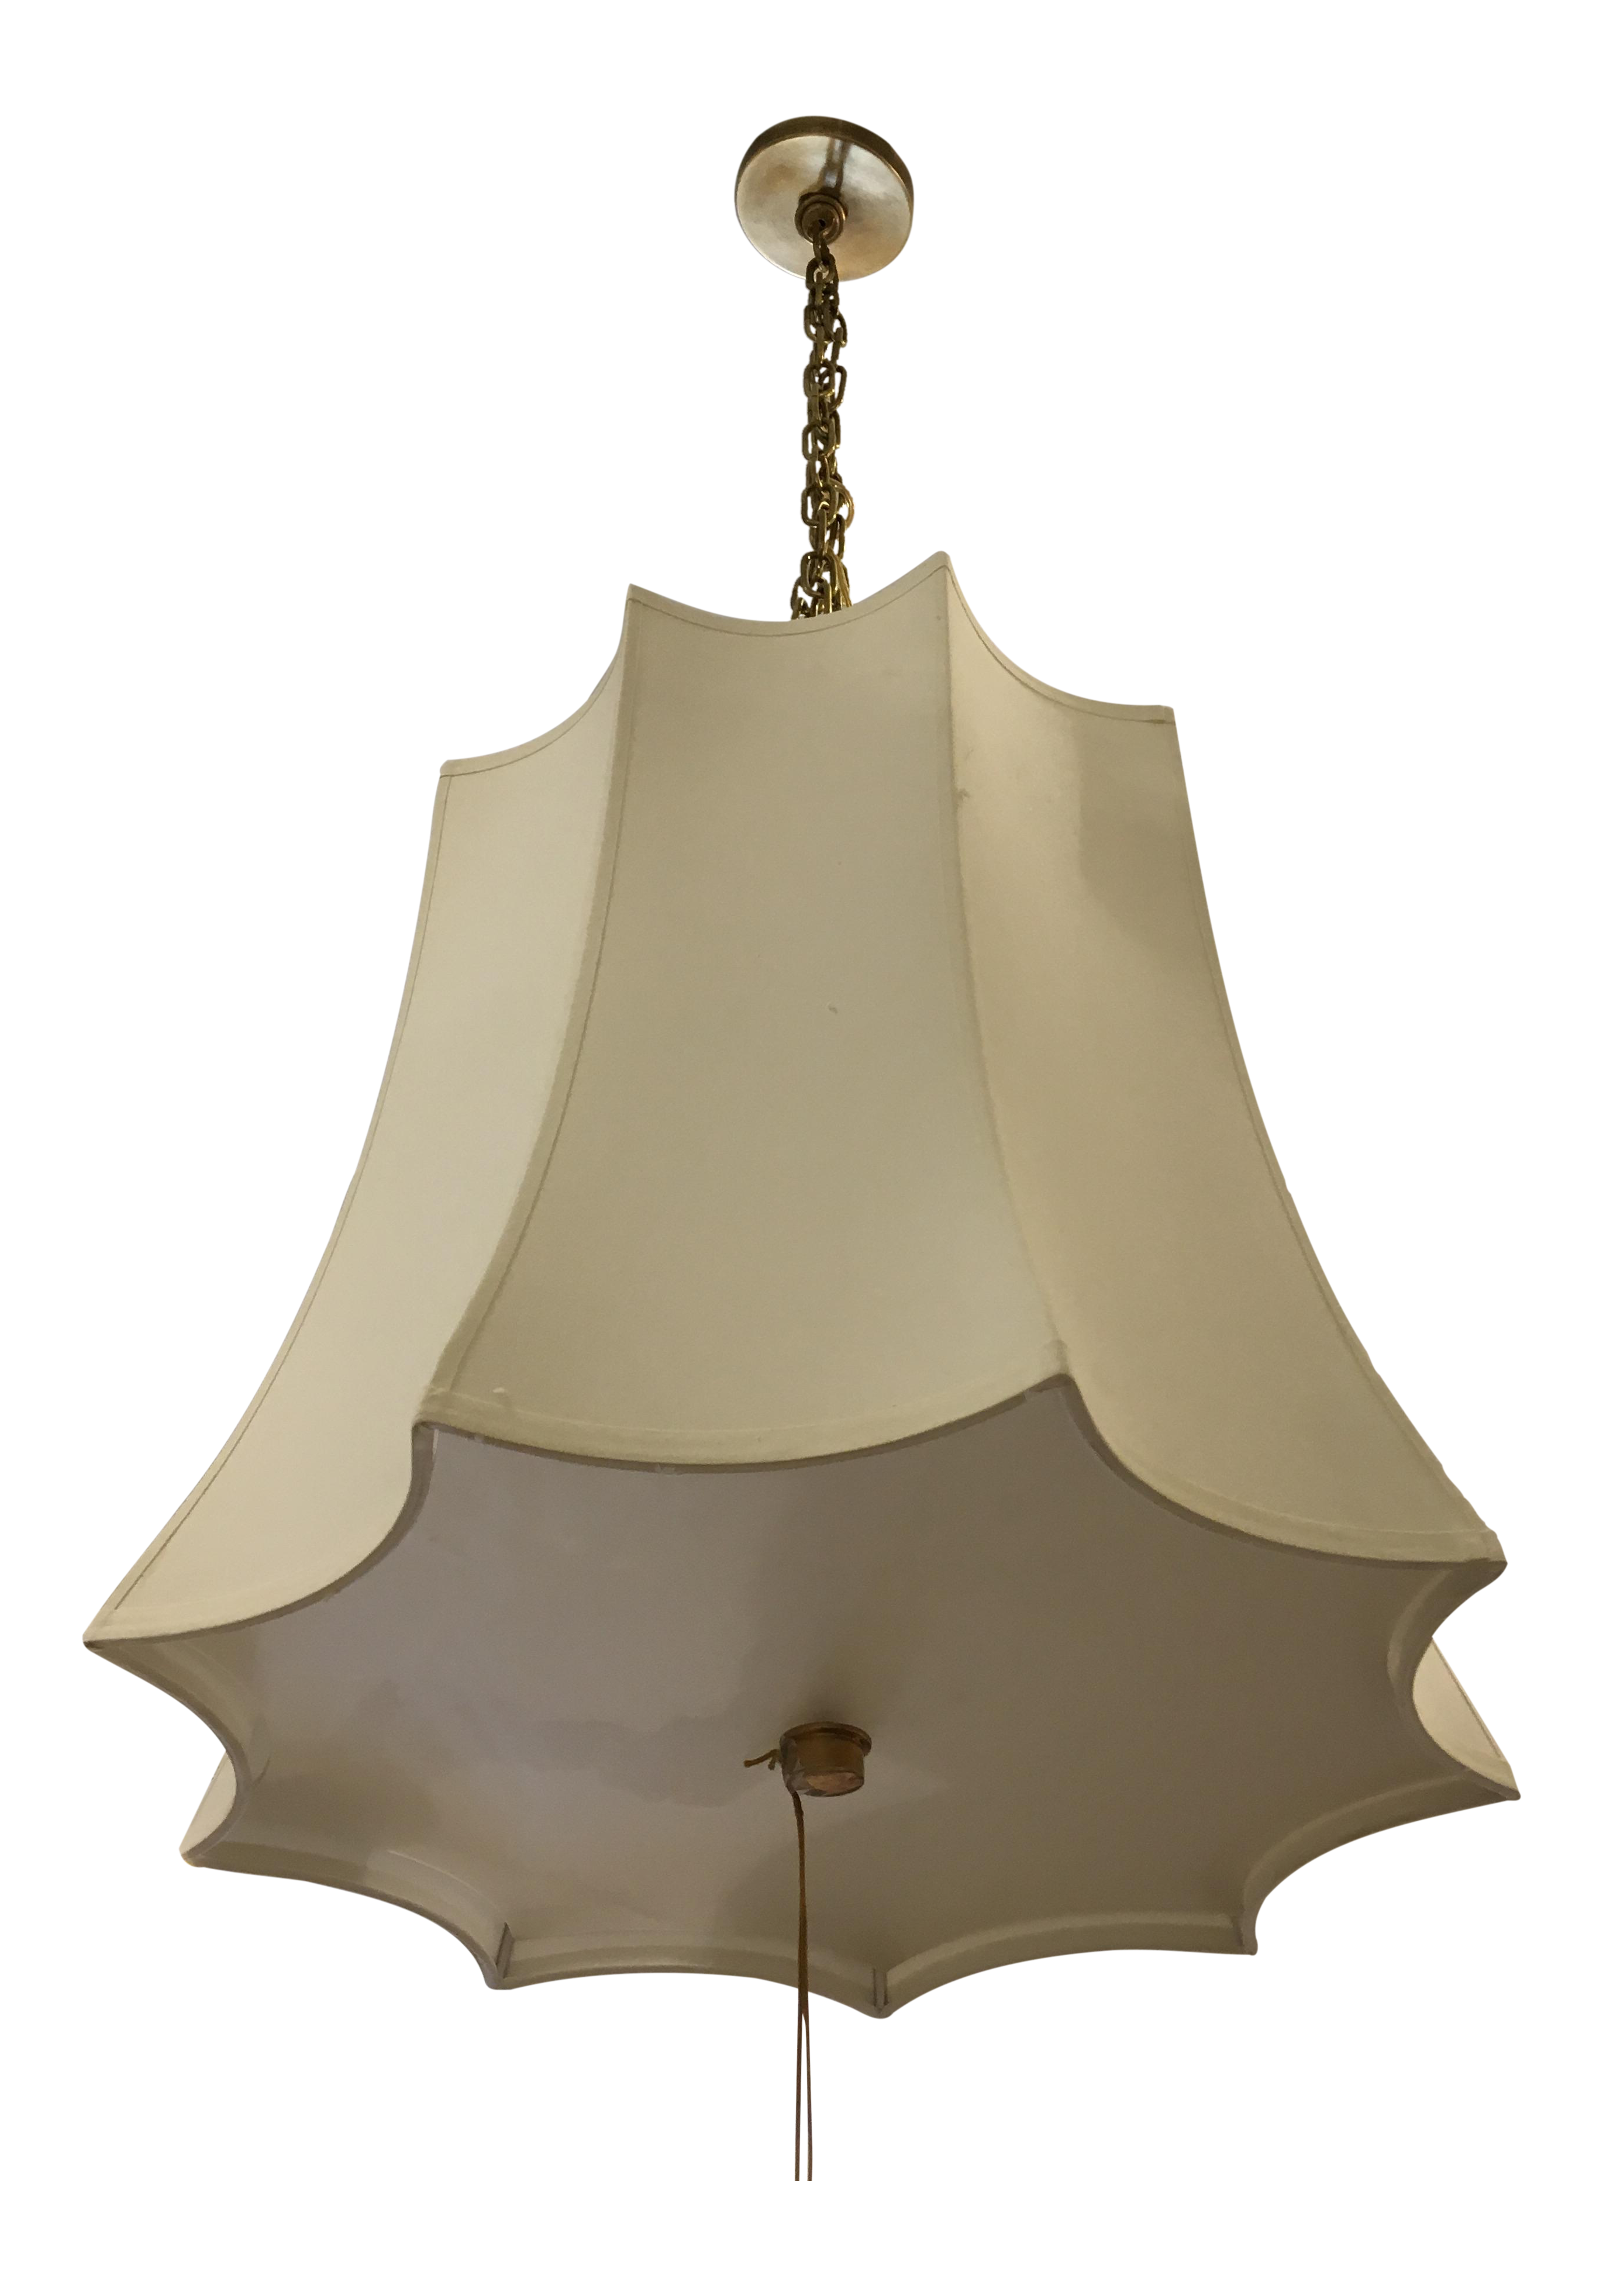 visual light ralph comfort chairish sconce on product nautical clamp lauren for